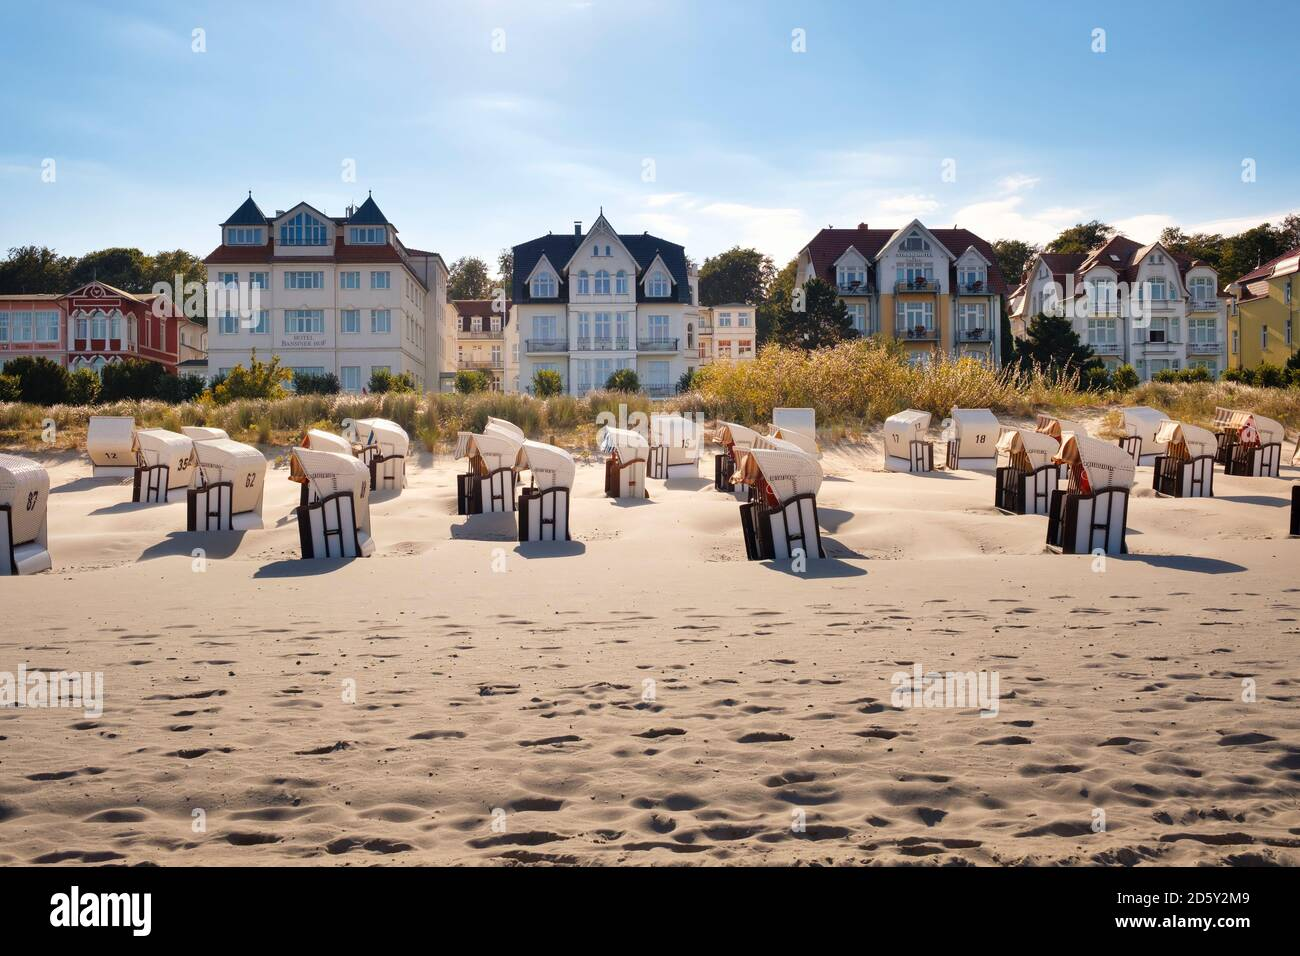 Germany, Usedom, Bansin, hooded beach chairs on the beach Stock Photo